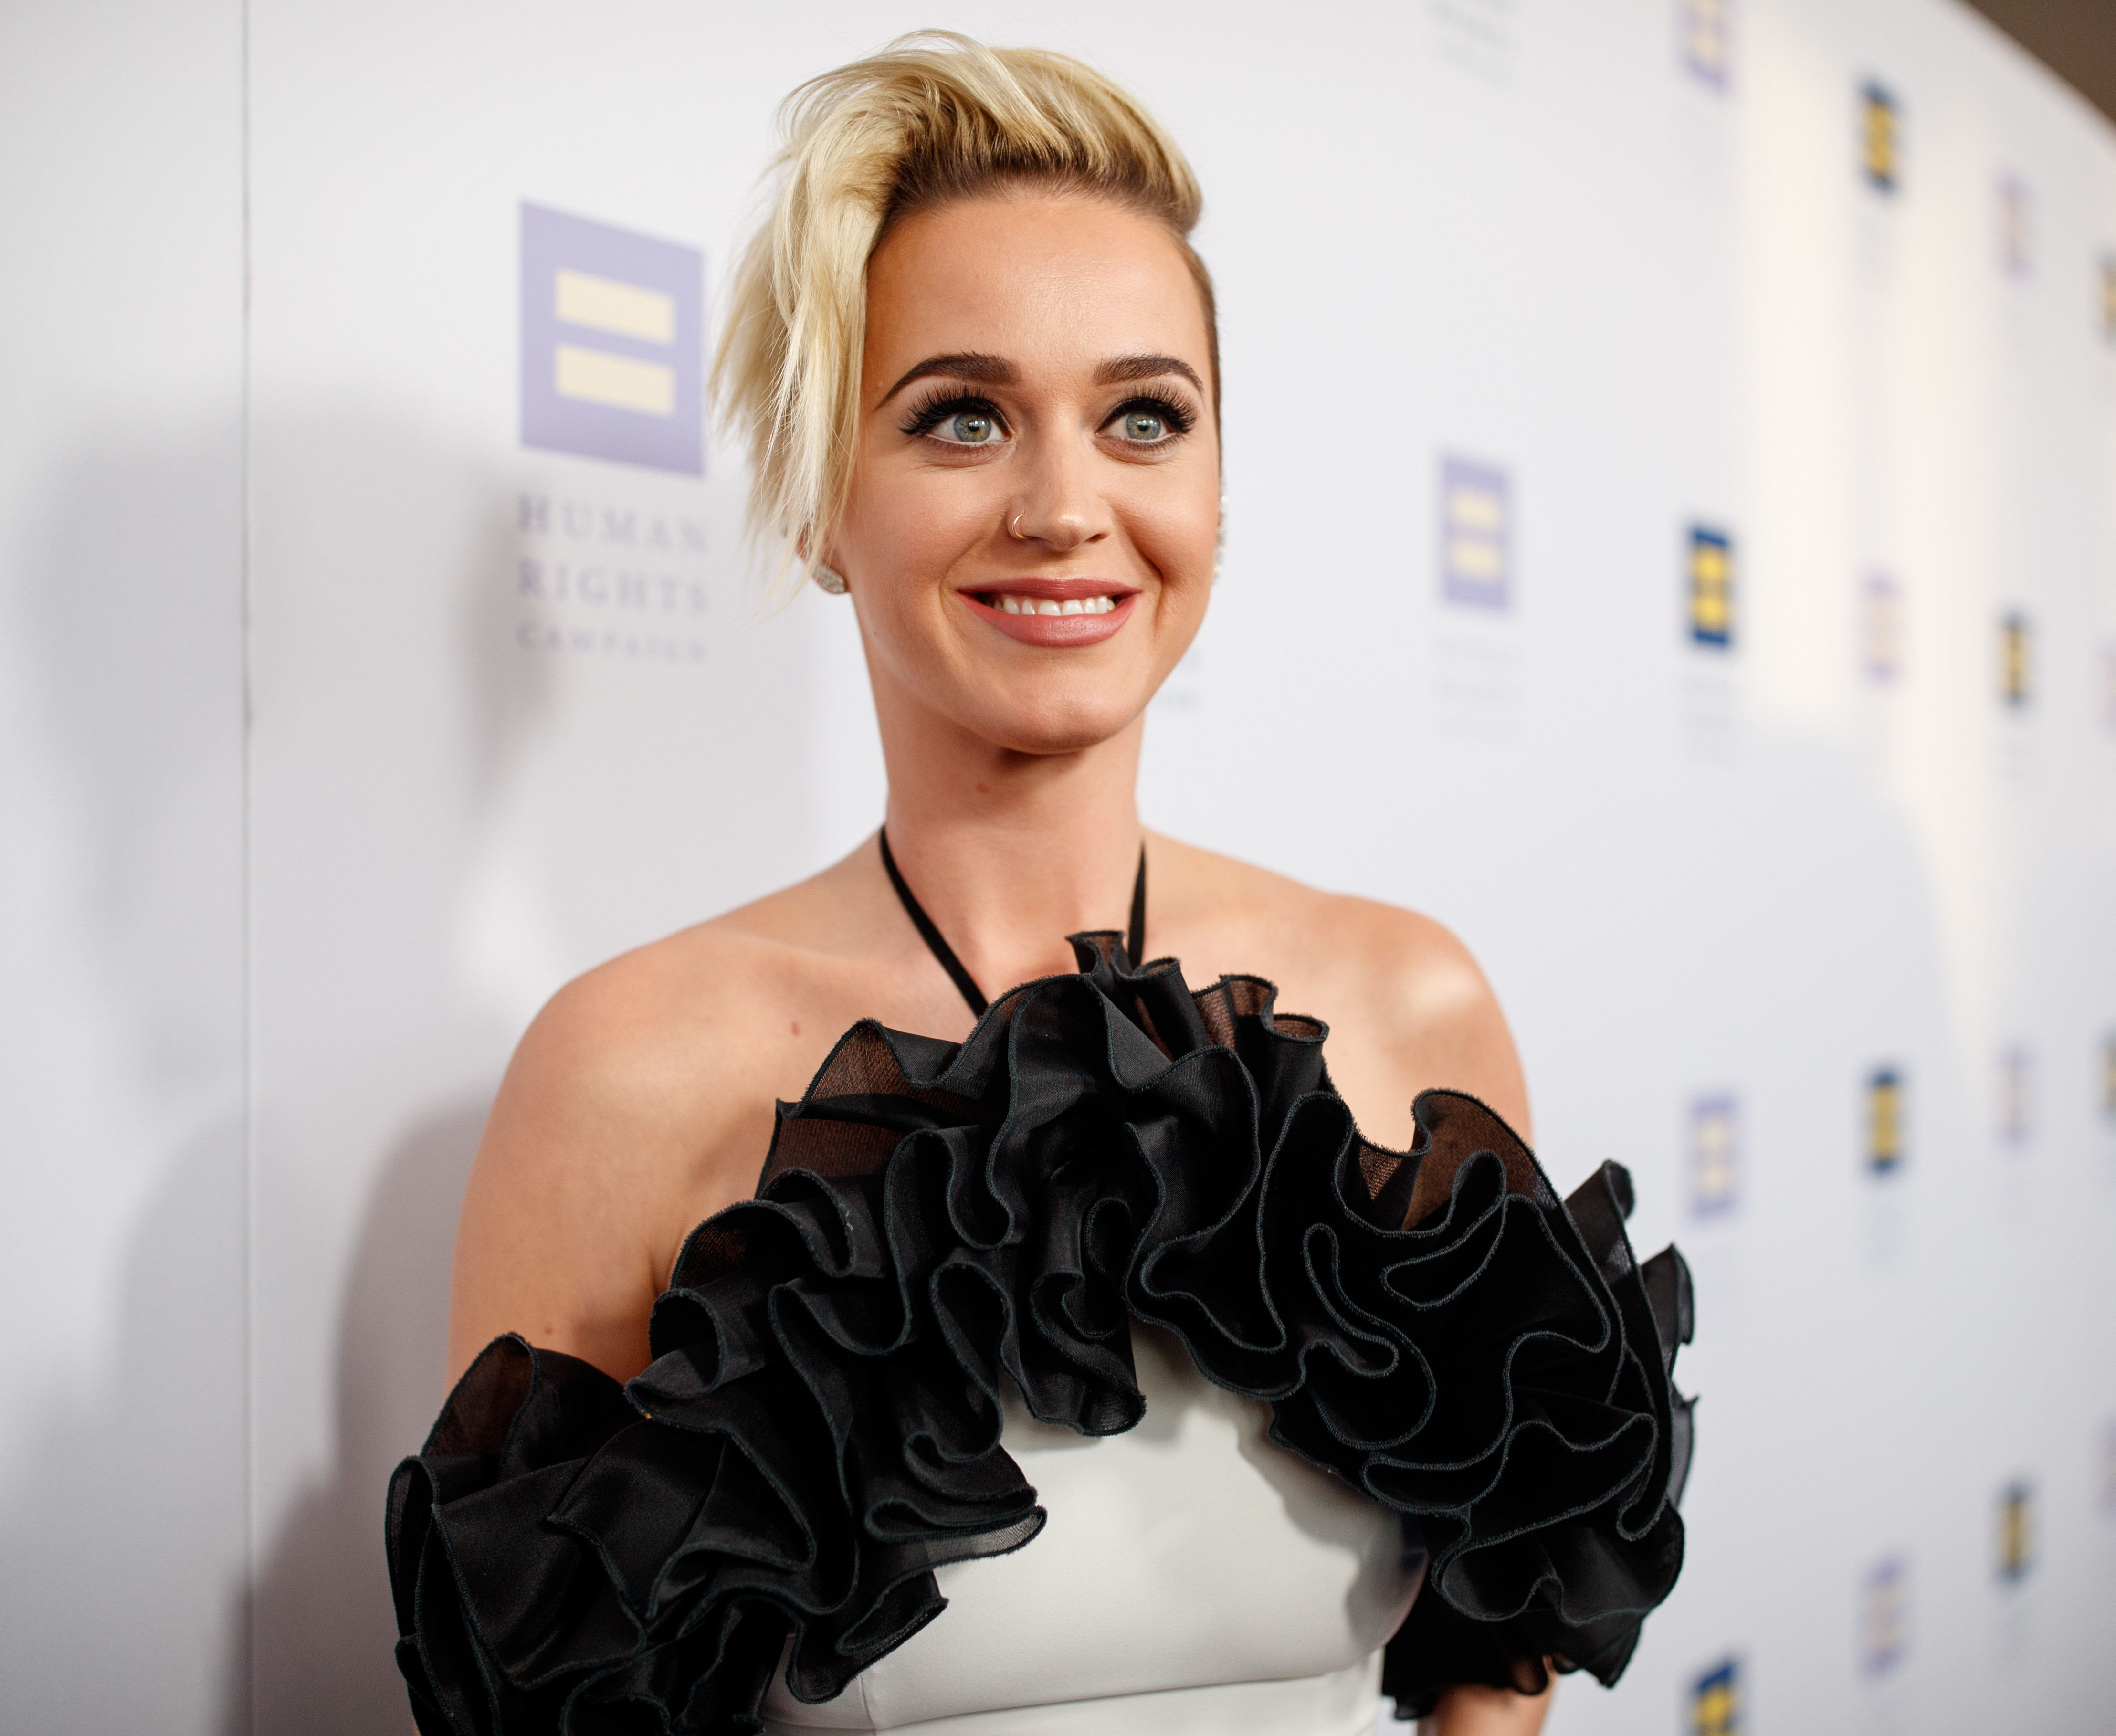 Katy Perry Opens Up About Sexuality And Her Religious